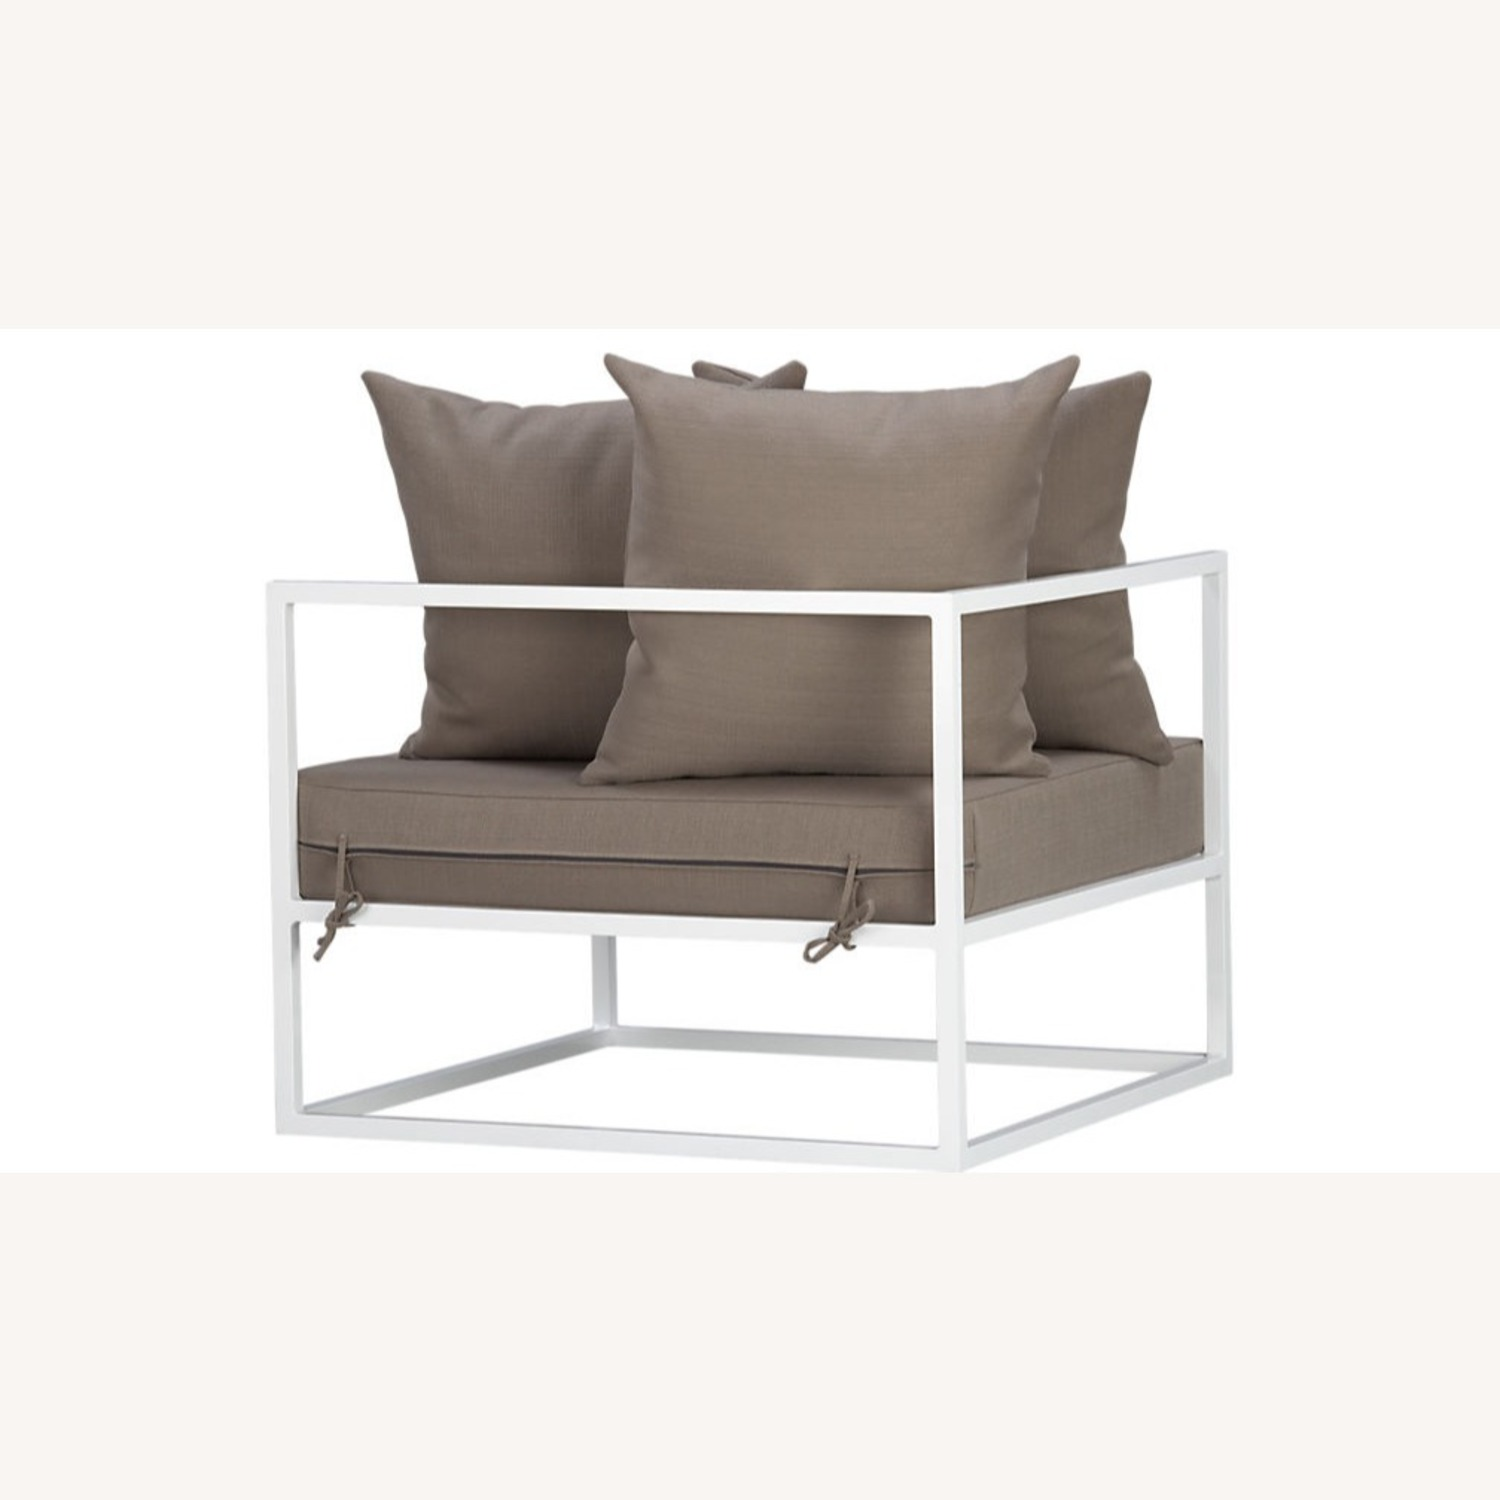 CB2 Casbah Outdoor Sectional Couch - image-3